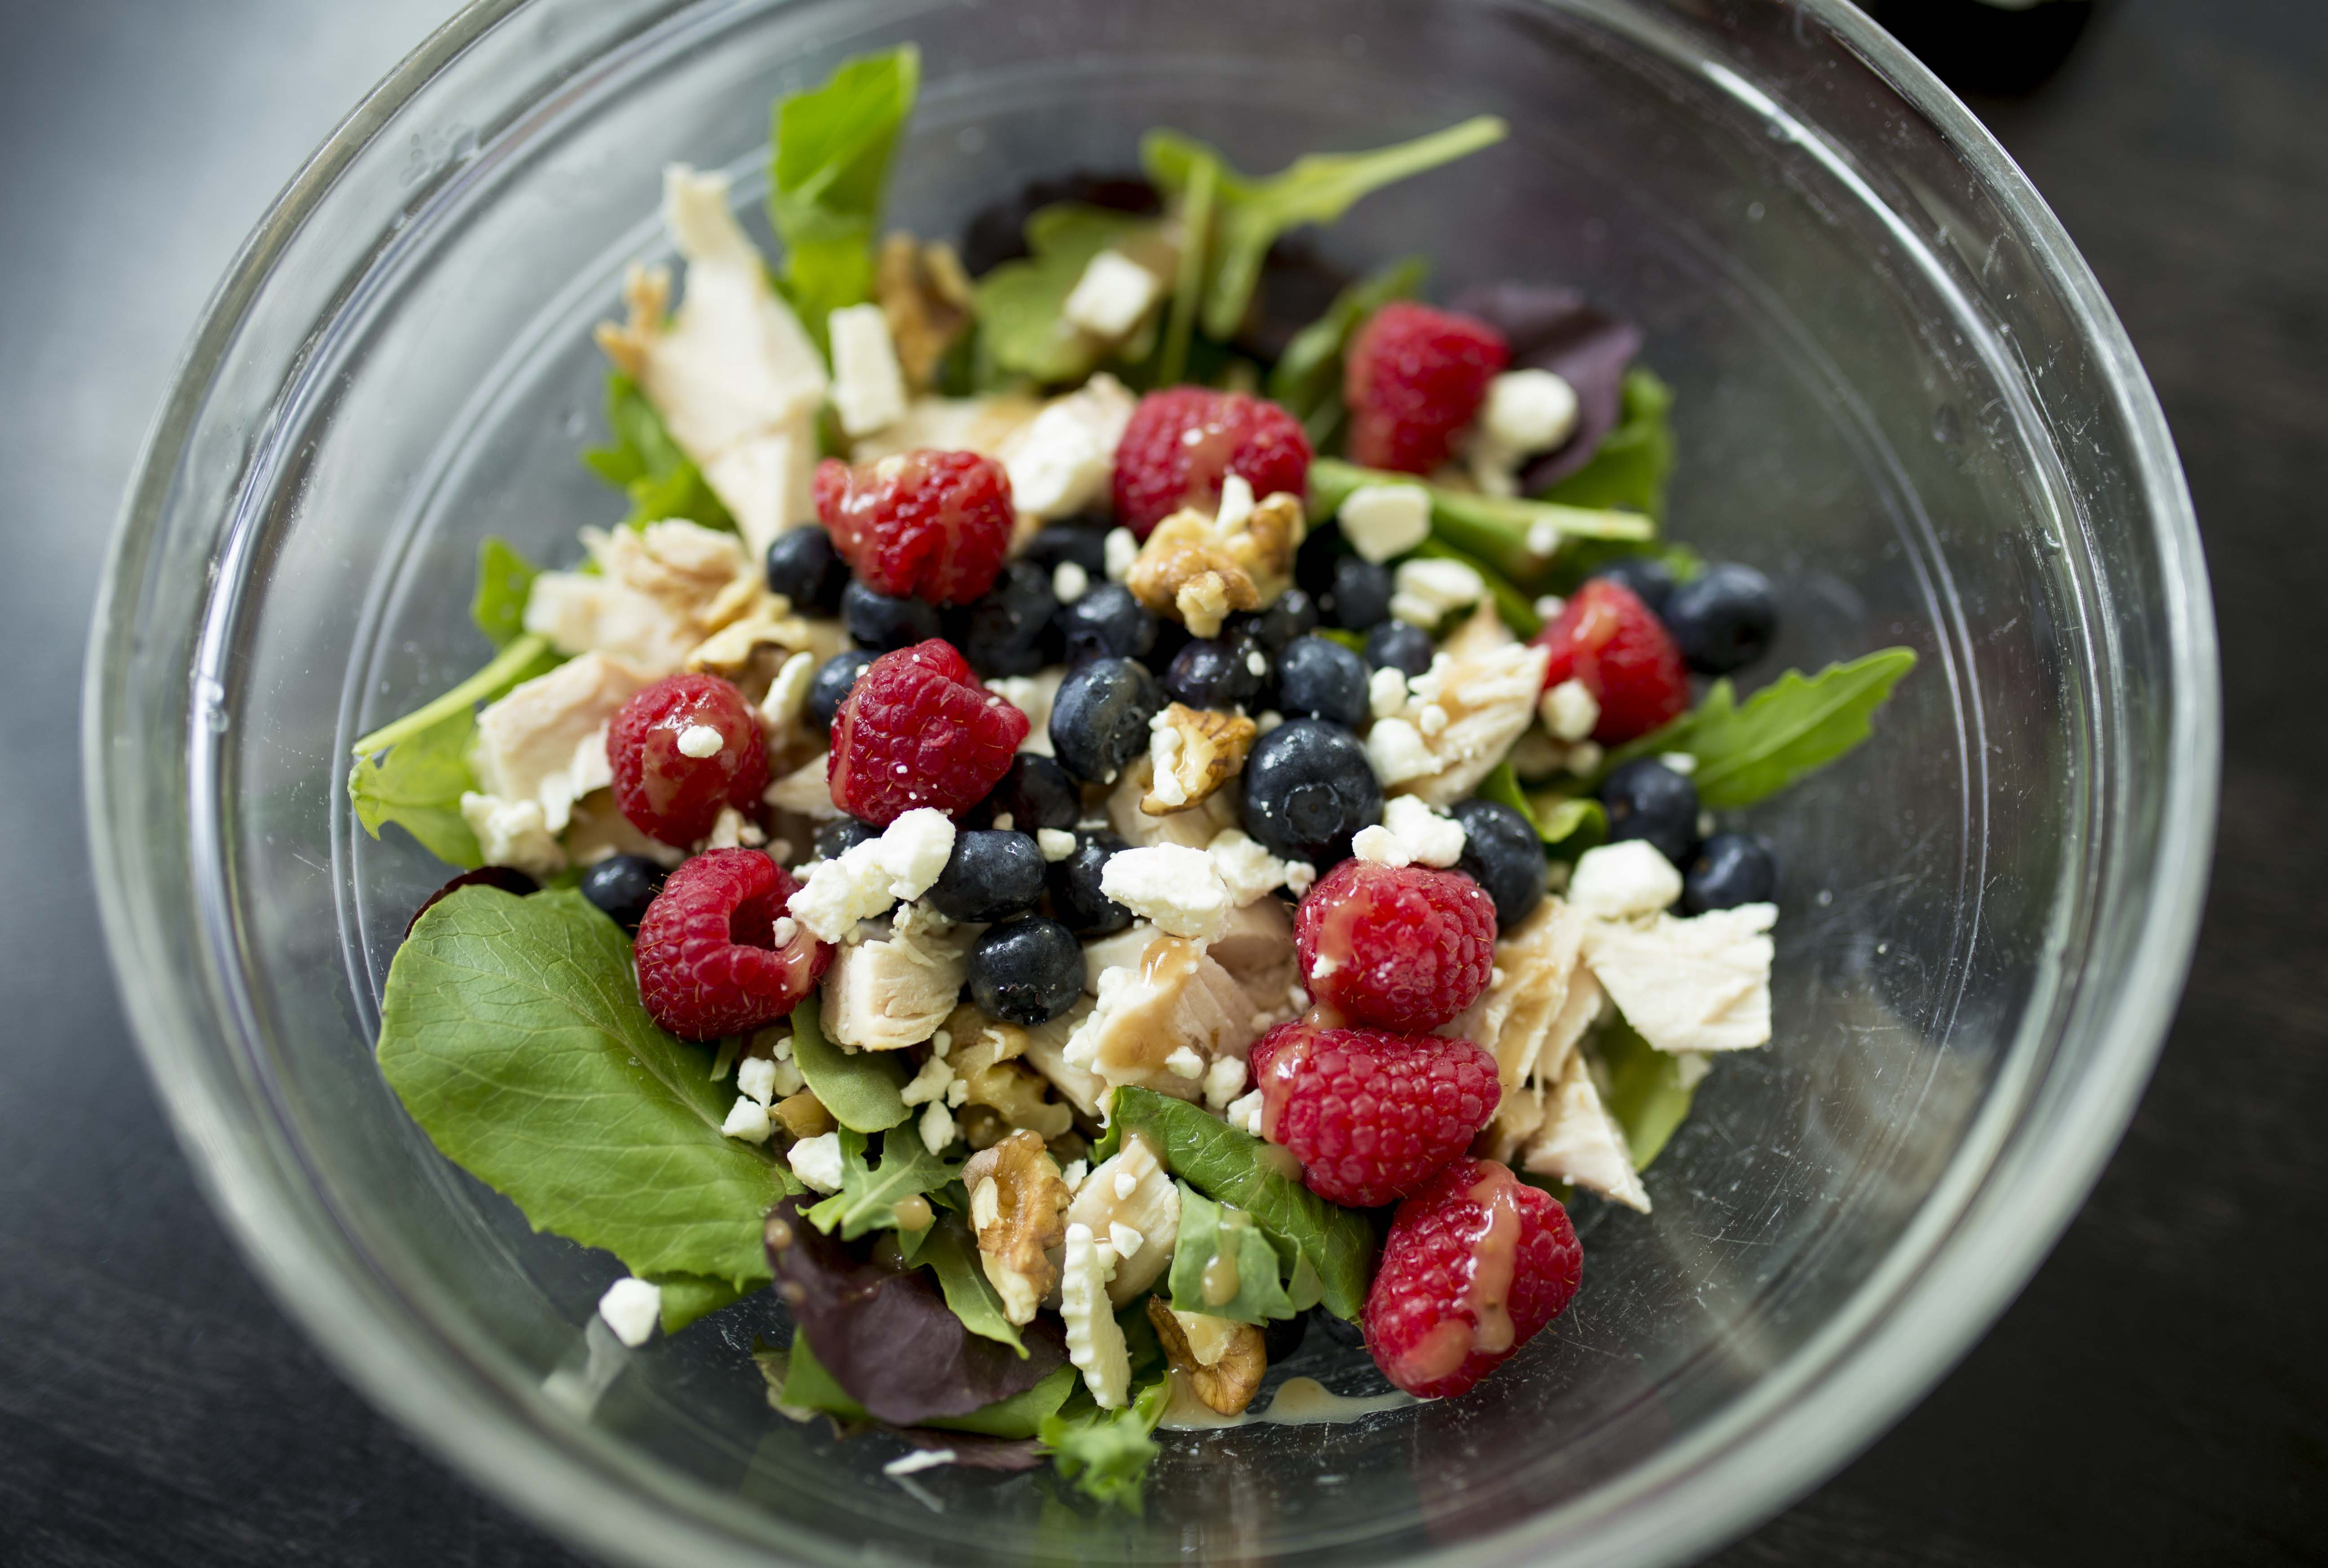 5-Minute Chicken and Berry Salad